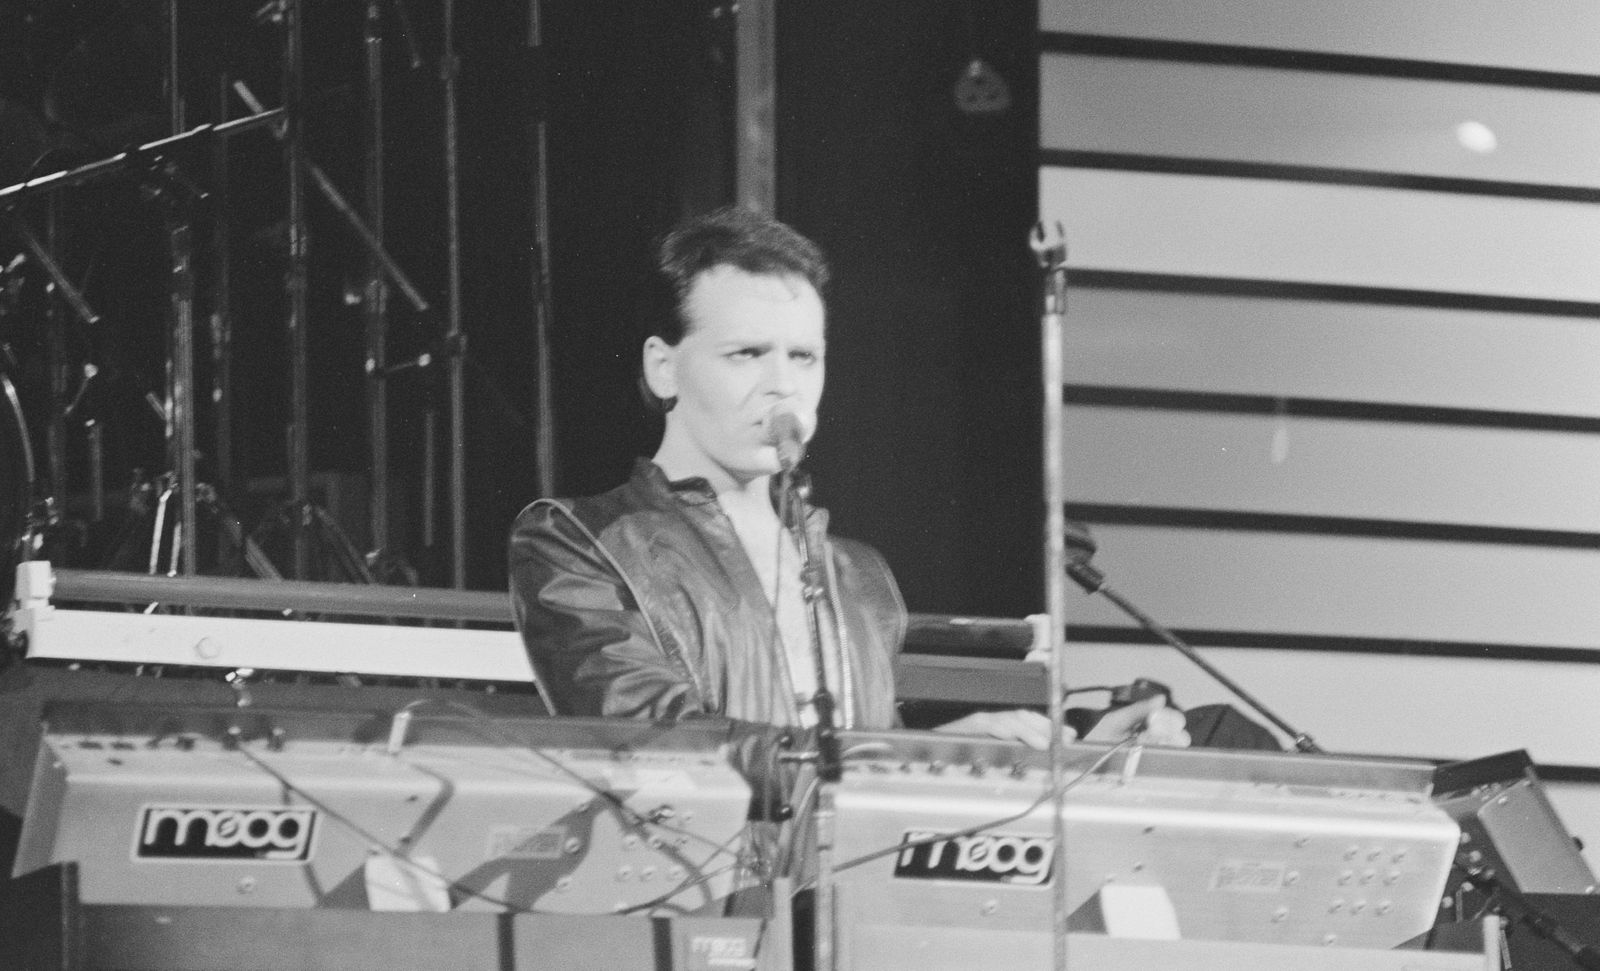 Gary Numan Singing and Playing the Keyboards